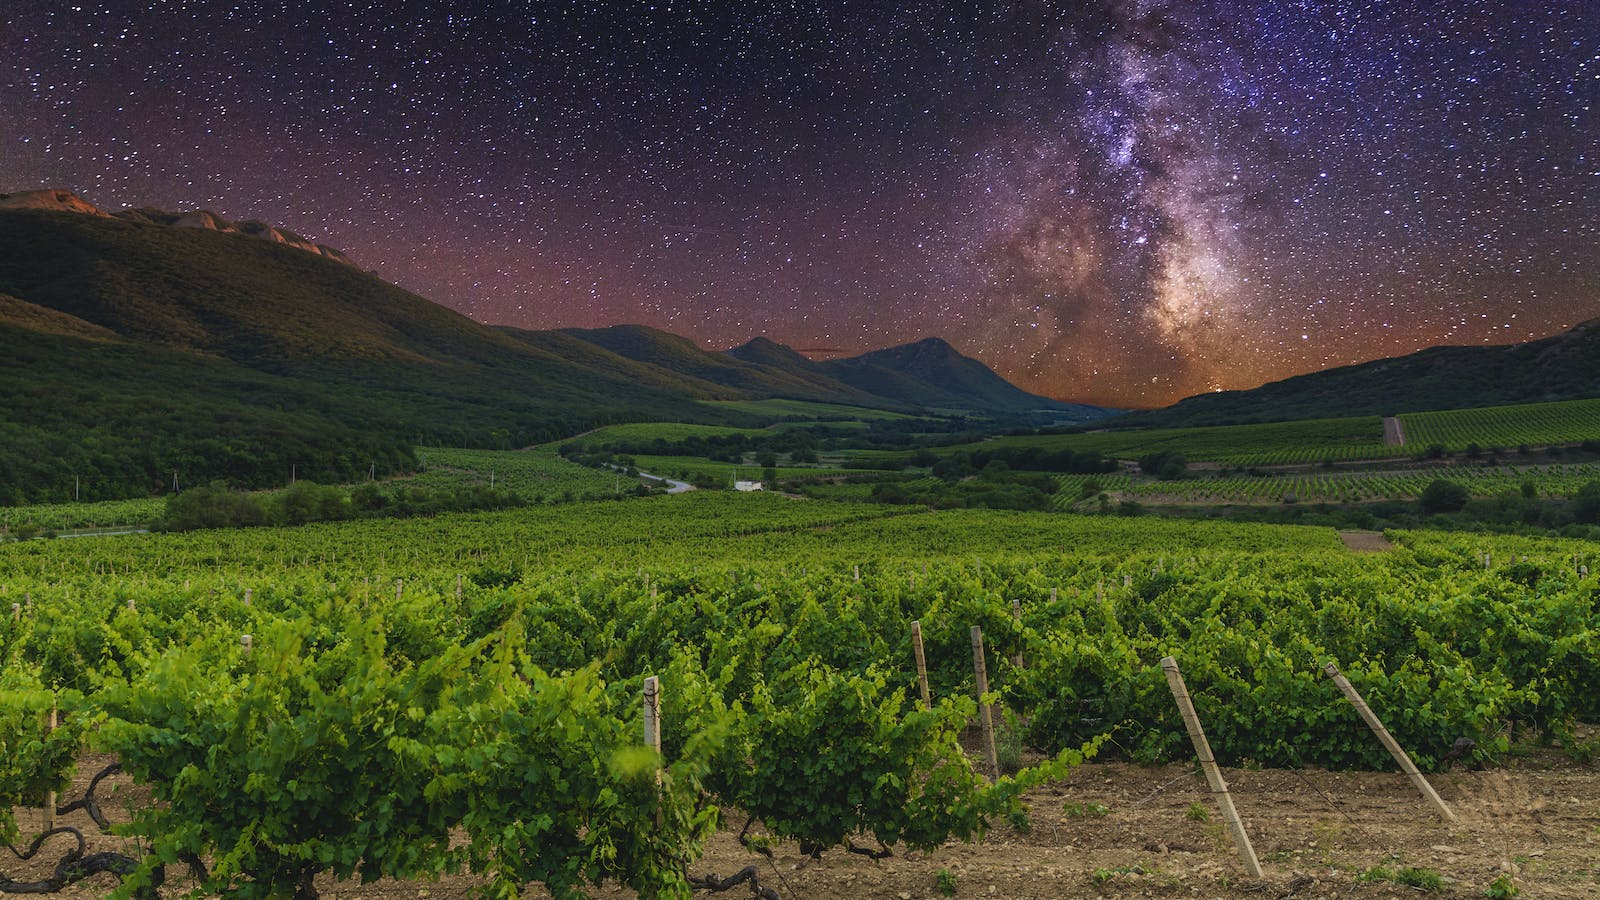 A Year in Space: Bordeaux Wine Splashes Down